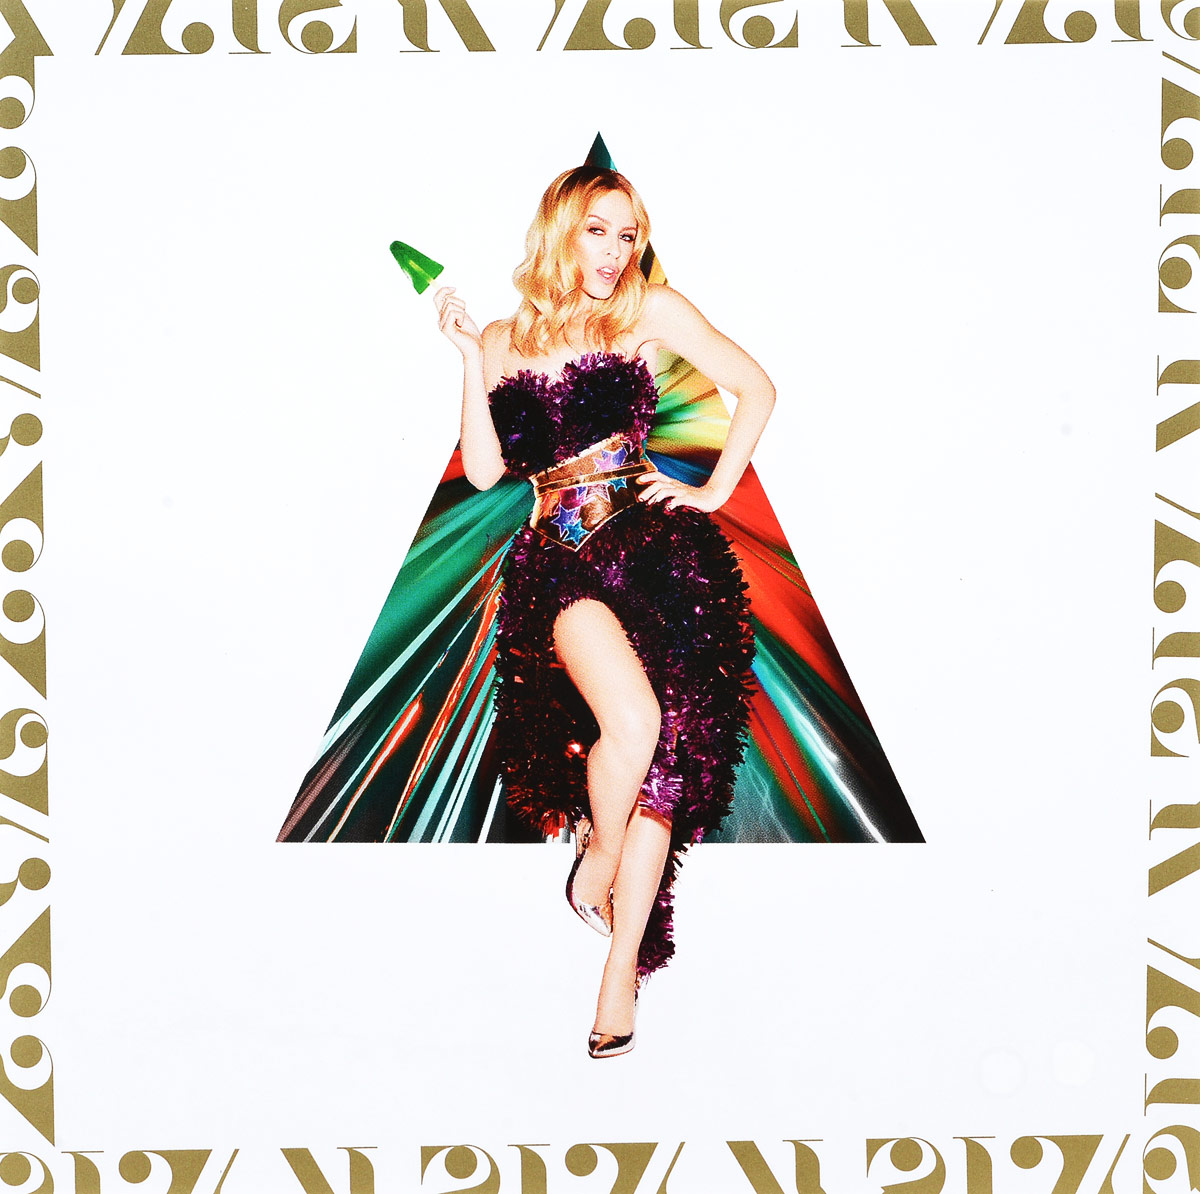 Кайли Миноуг Kylie Minogue. Kylie Christmas. Snow Queen Edition кайли миноуг kylie minogue enjoy yourself 2 cd dvd lp